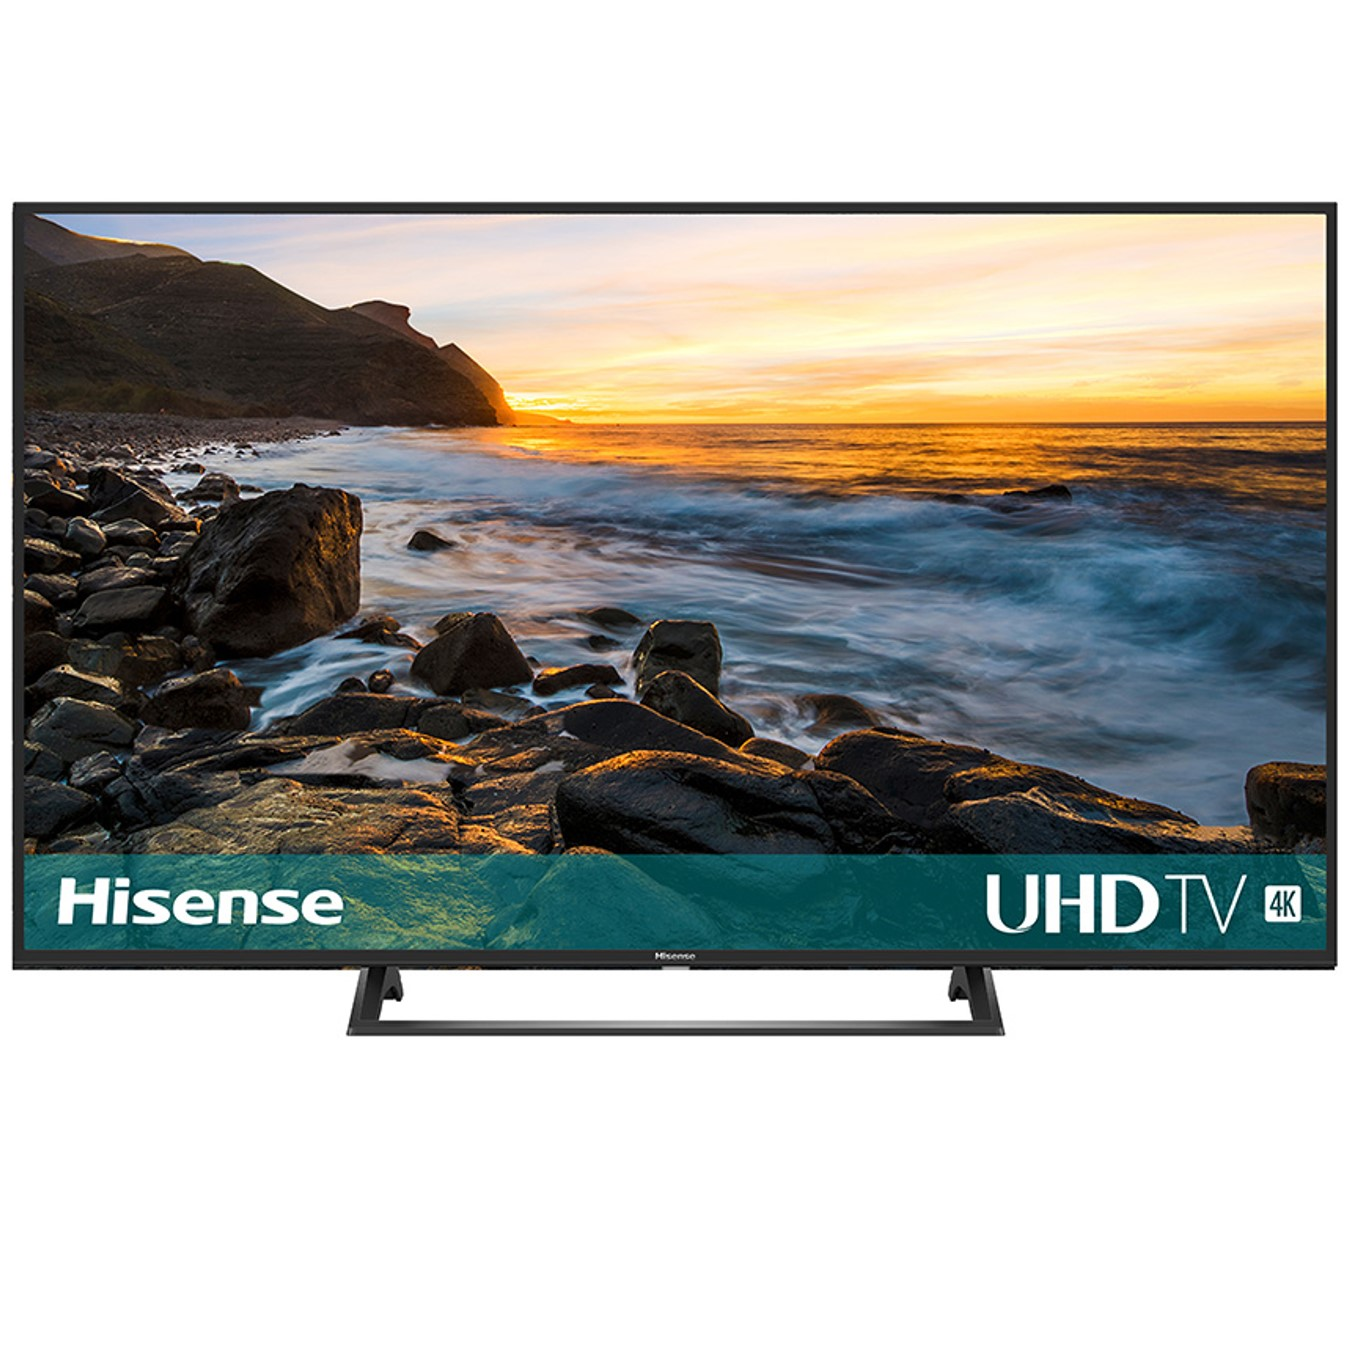 "TV HISENSE 43"" LED 4K UHD/ 43B7300/ HDR10/ SMART TV/ 3 HDMI/ 2 USB/ DVB-T2/T/C/S2/S/ QUAD CORE"